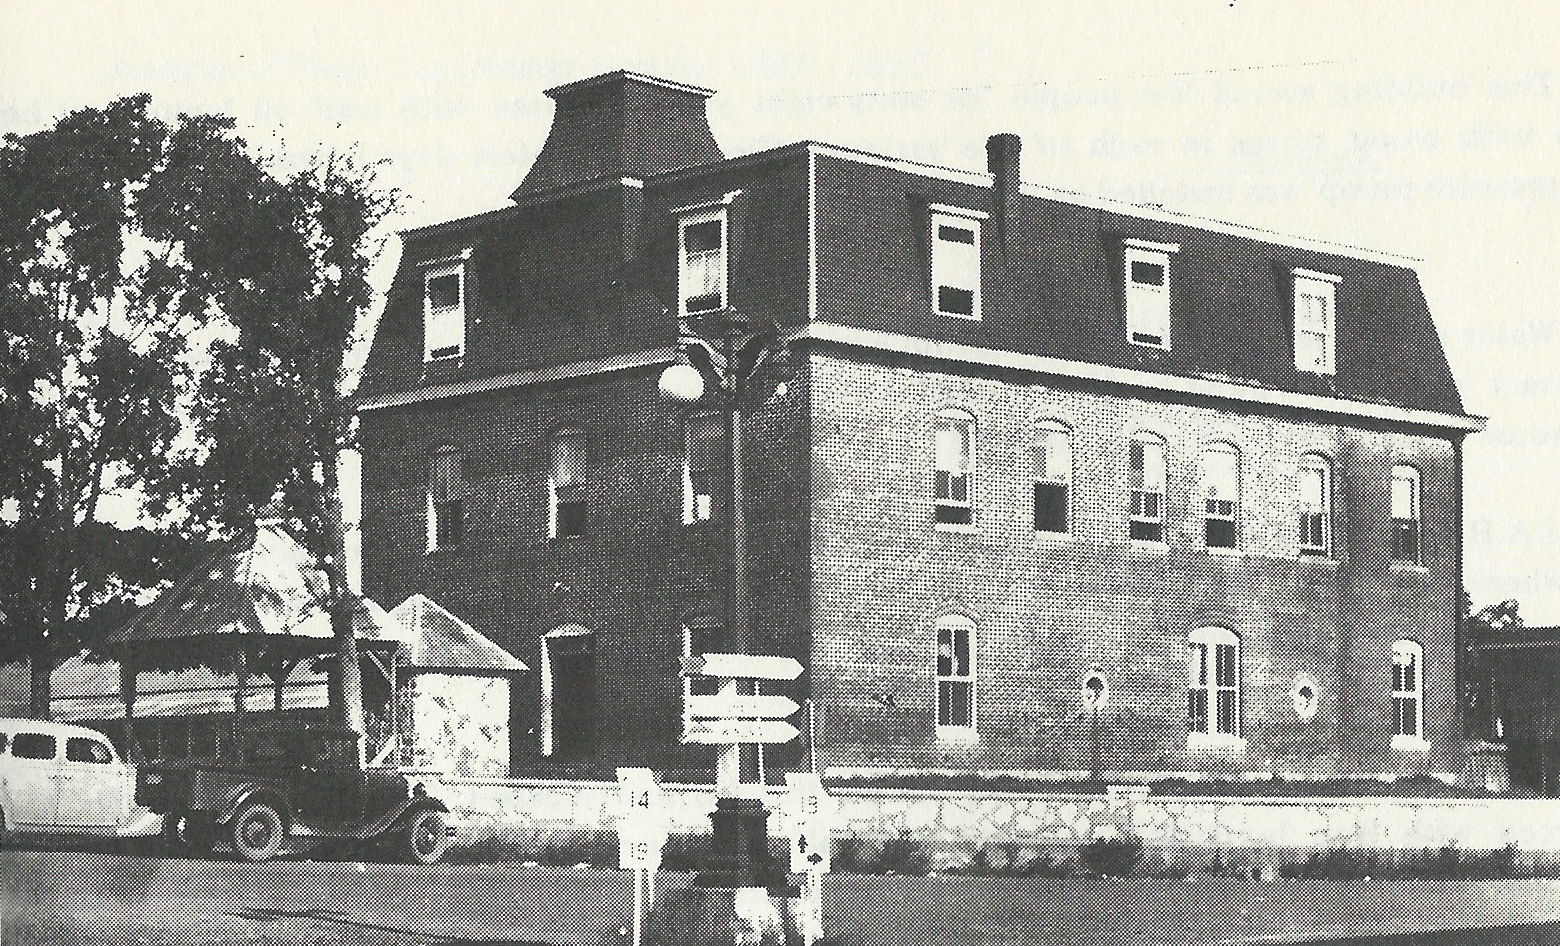 The second Courthouse in 1903